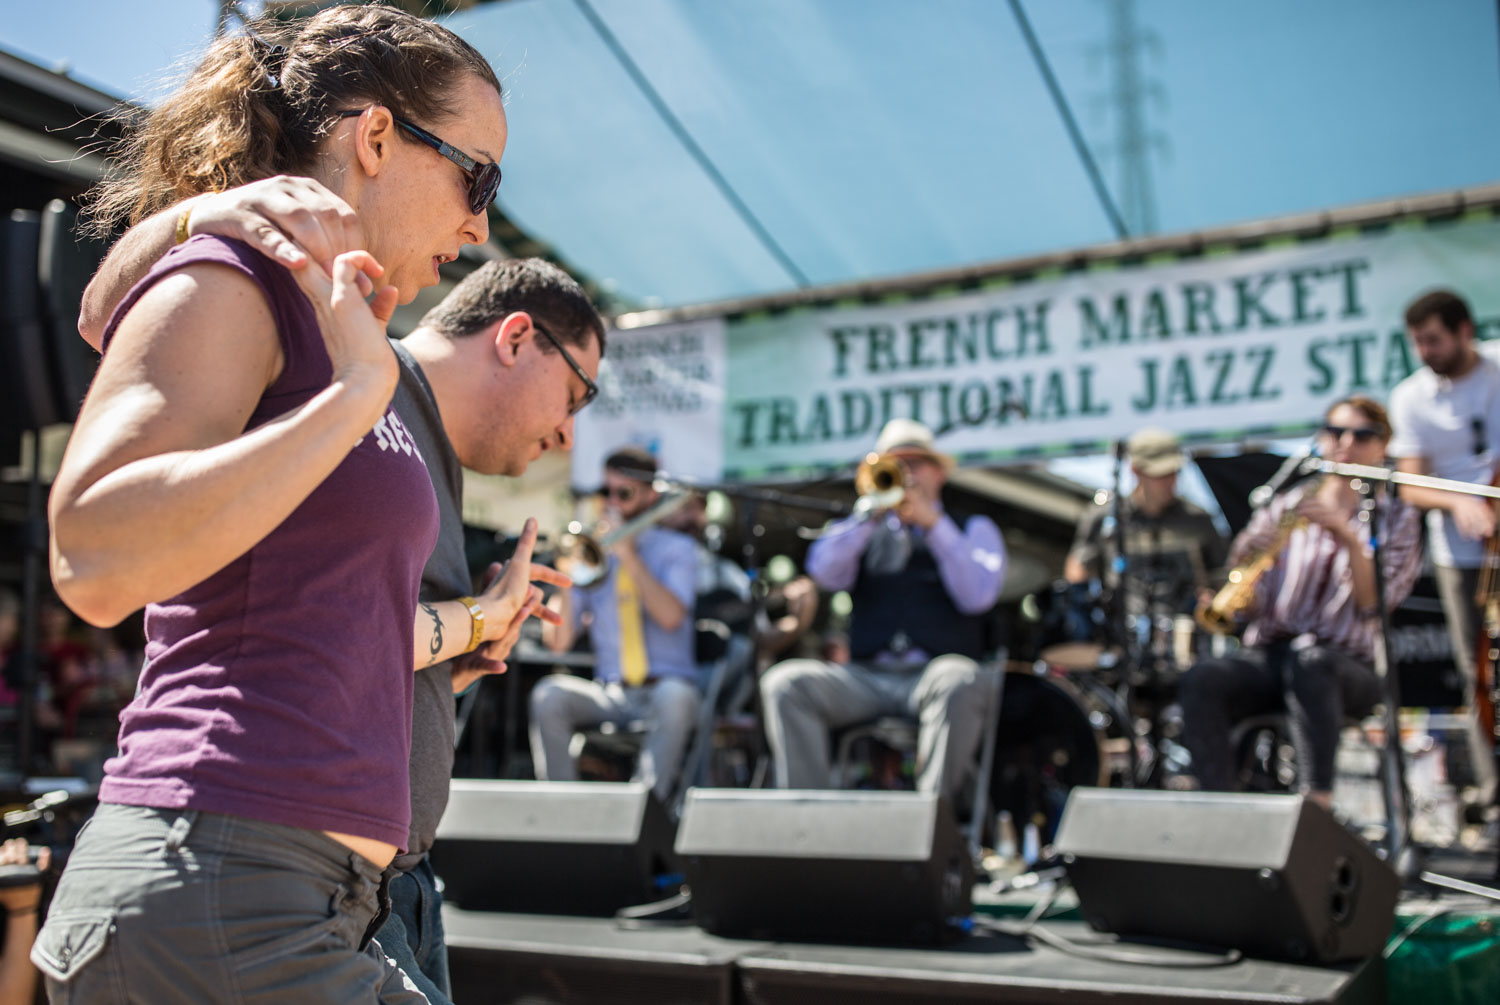 A swing dancing couple enjoy the sounds of Aurora Nealand's band at the French Market Stage.